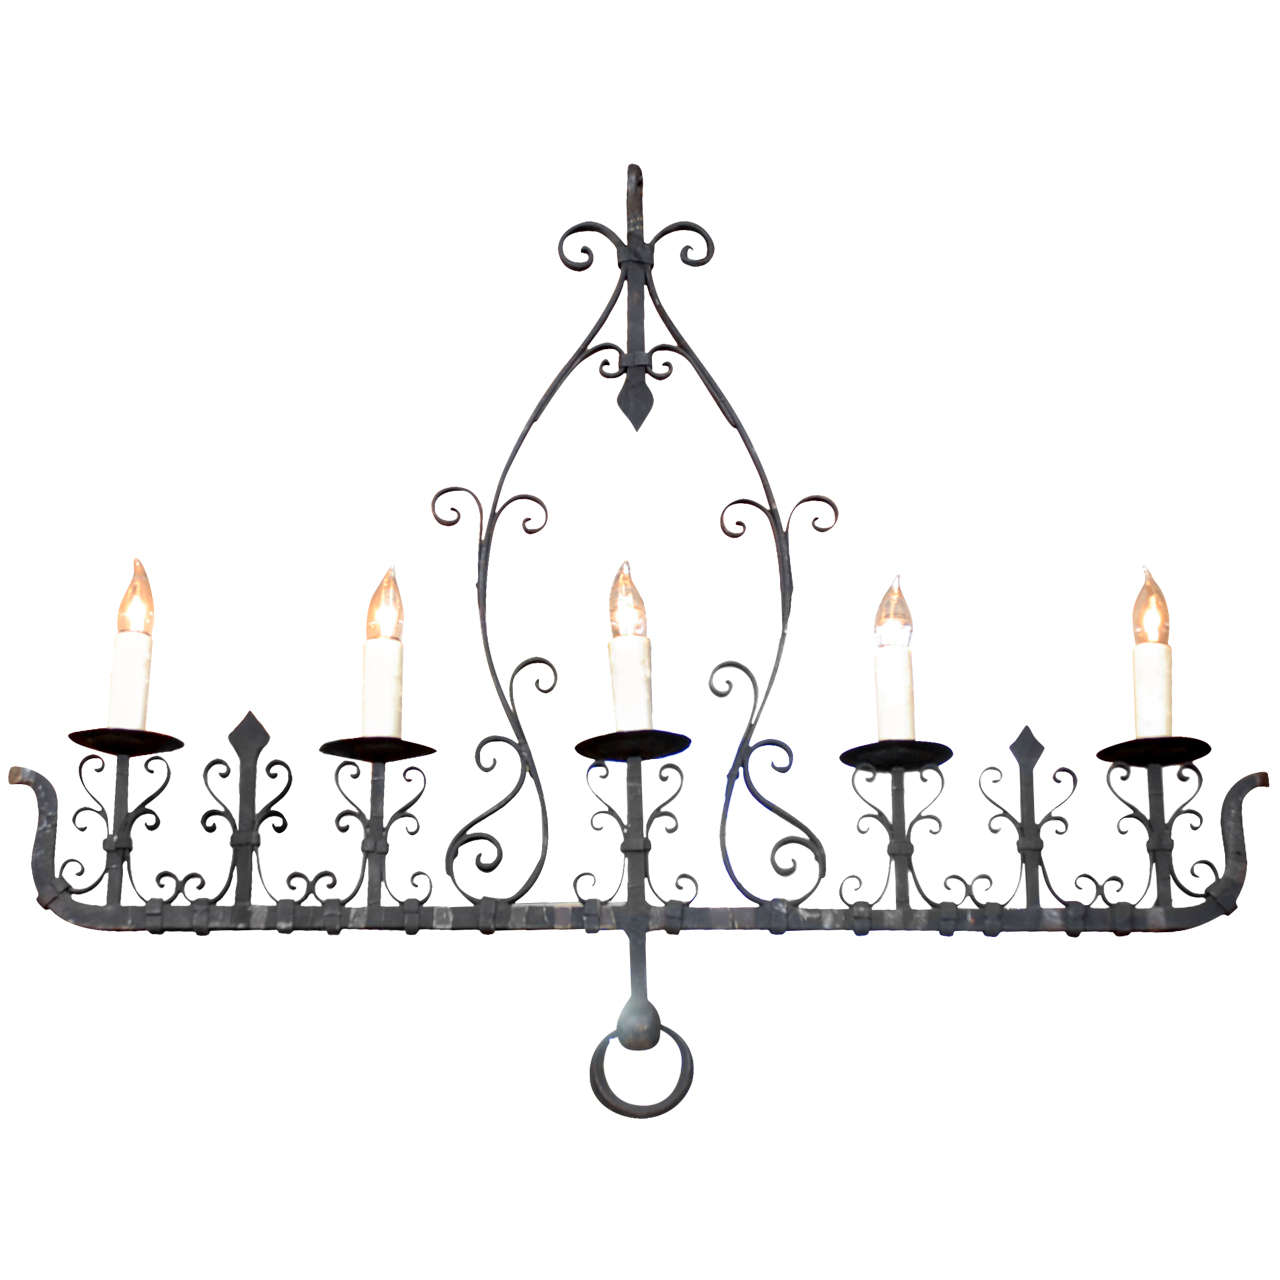 French 1940s, Wrought Iron Five-Light Linear Chandelier with Scrolled Décor